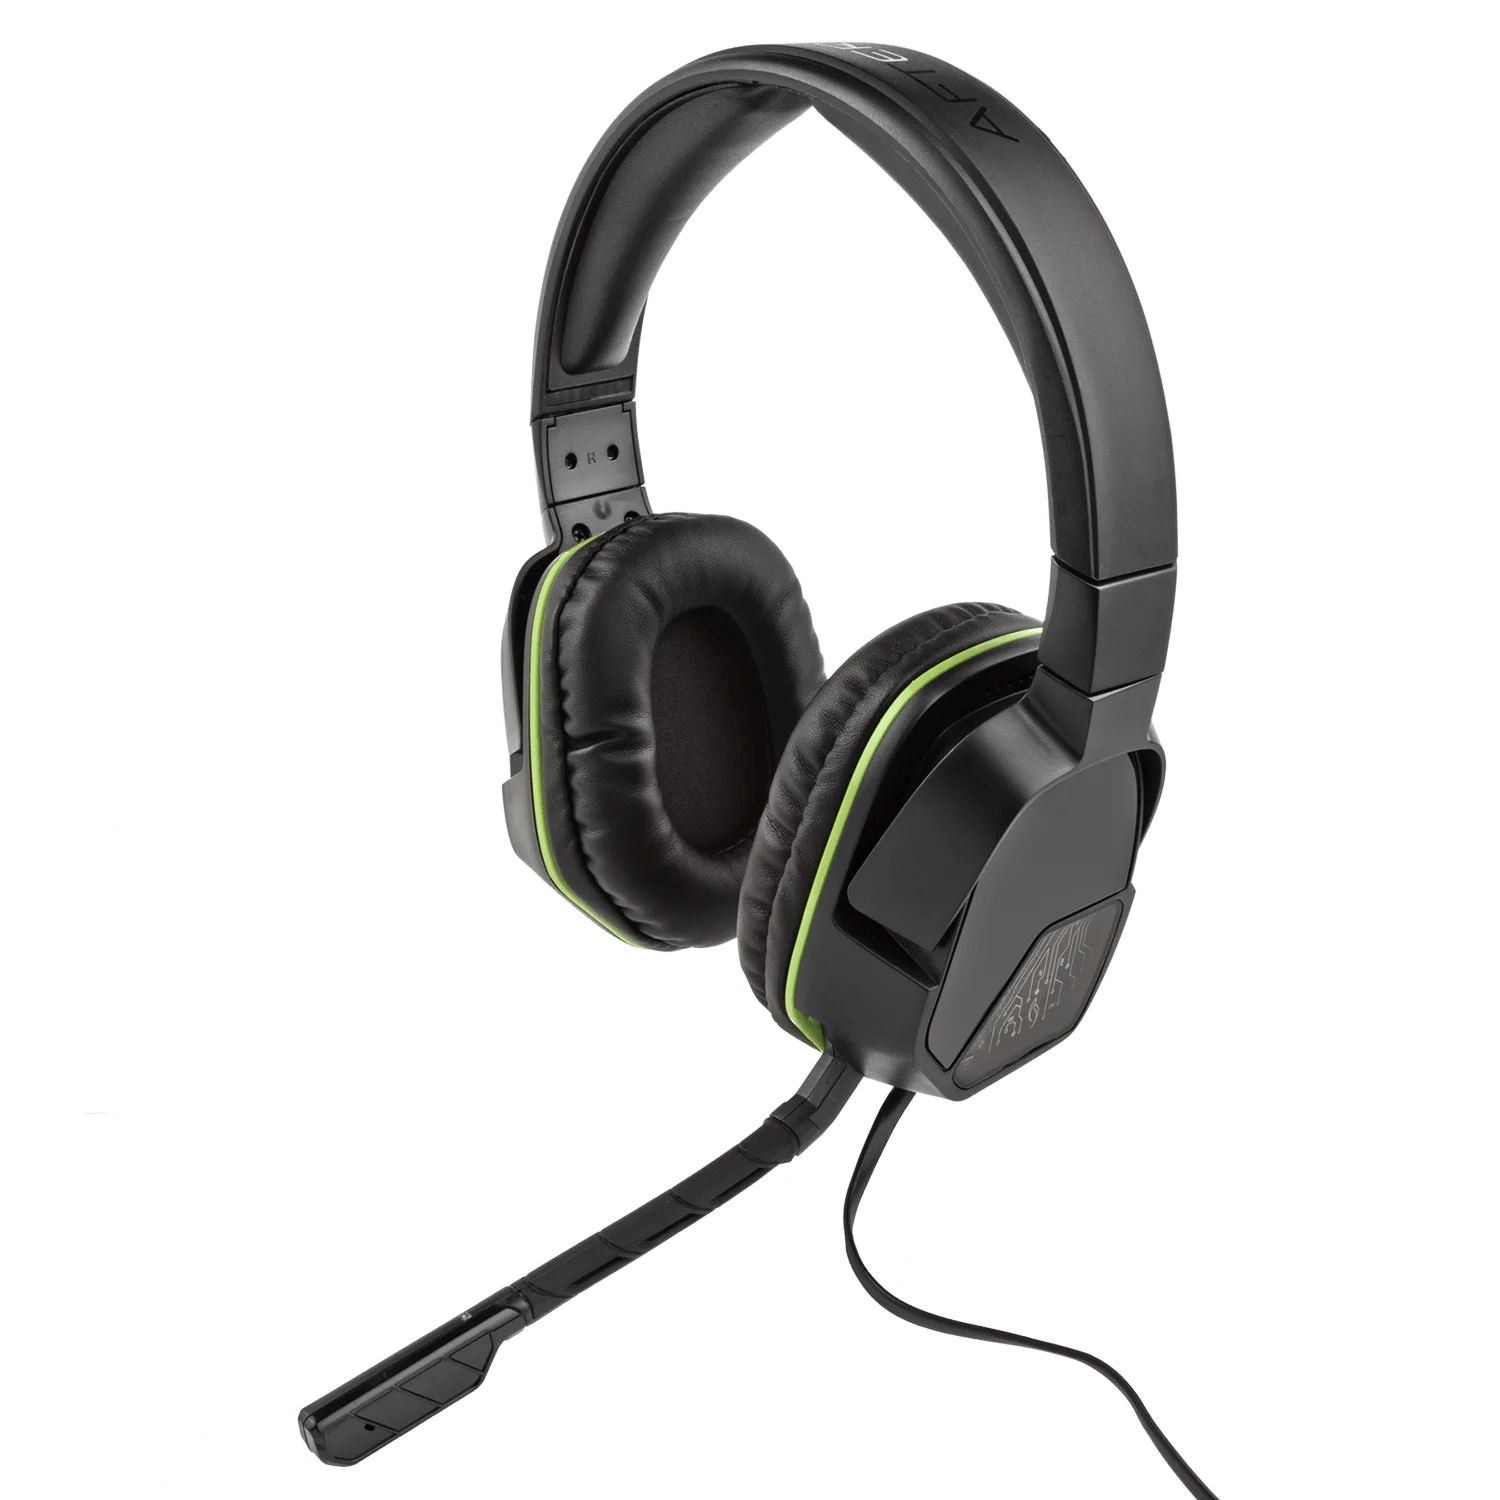 pdp xbox one afterglow lvl 3 stereo gaming headset black 048 041 headset for [ 1500 x 1500 Pixel ]